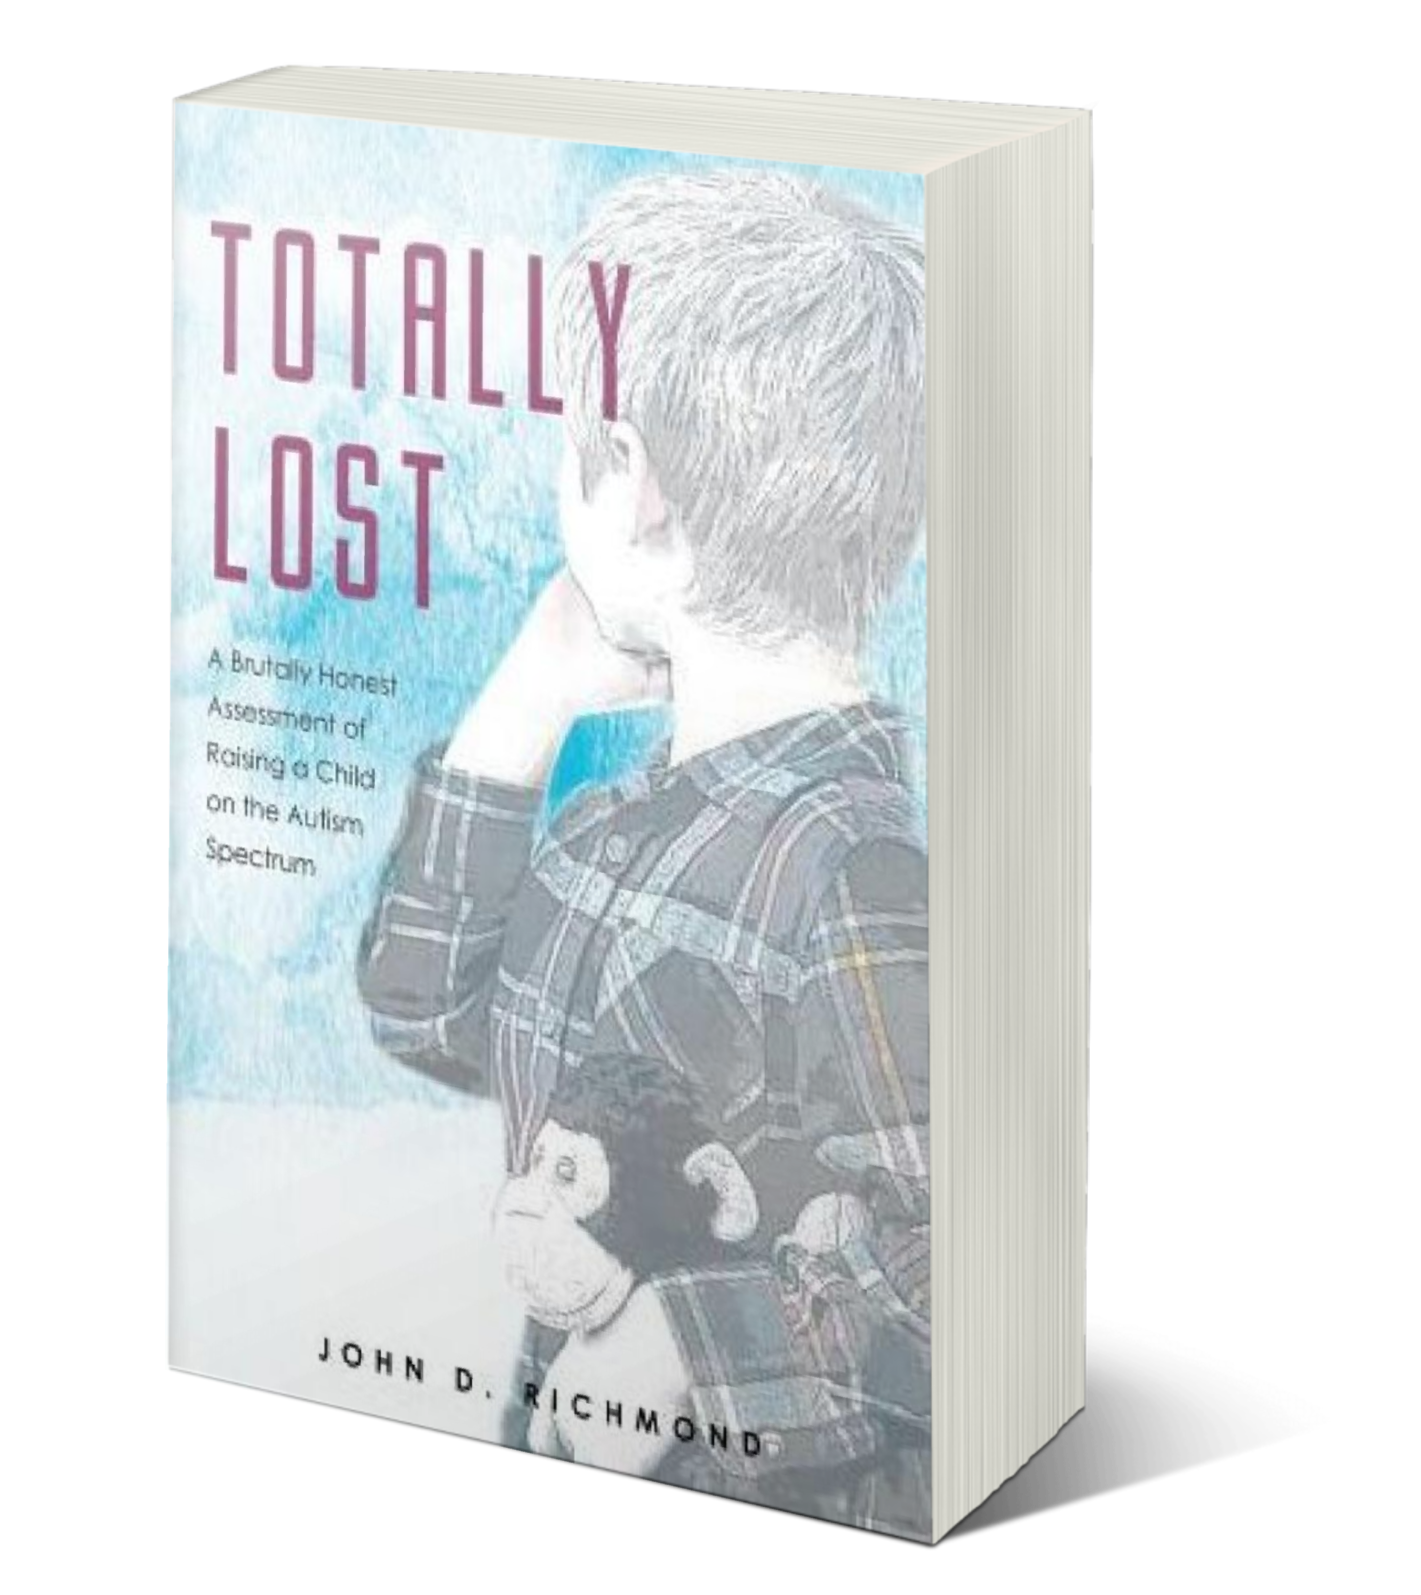 Totally Lost: A Brutally Honest Assessment of Raising a Child on the Autism Spectrum